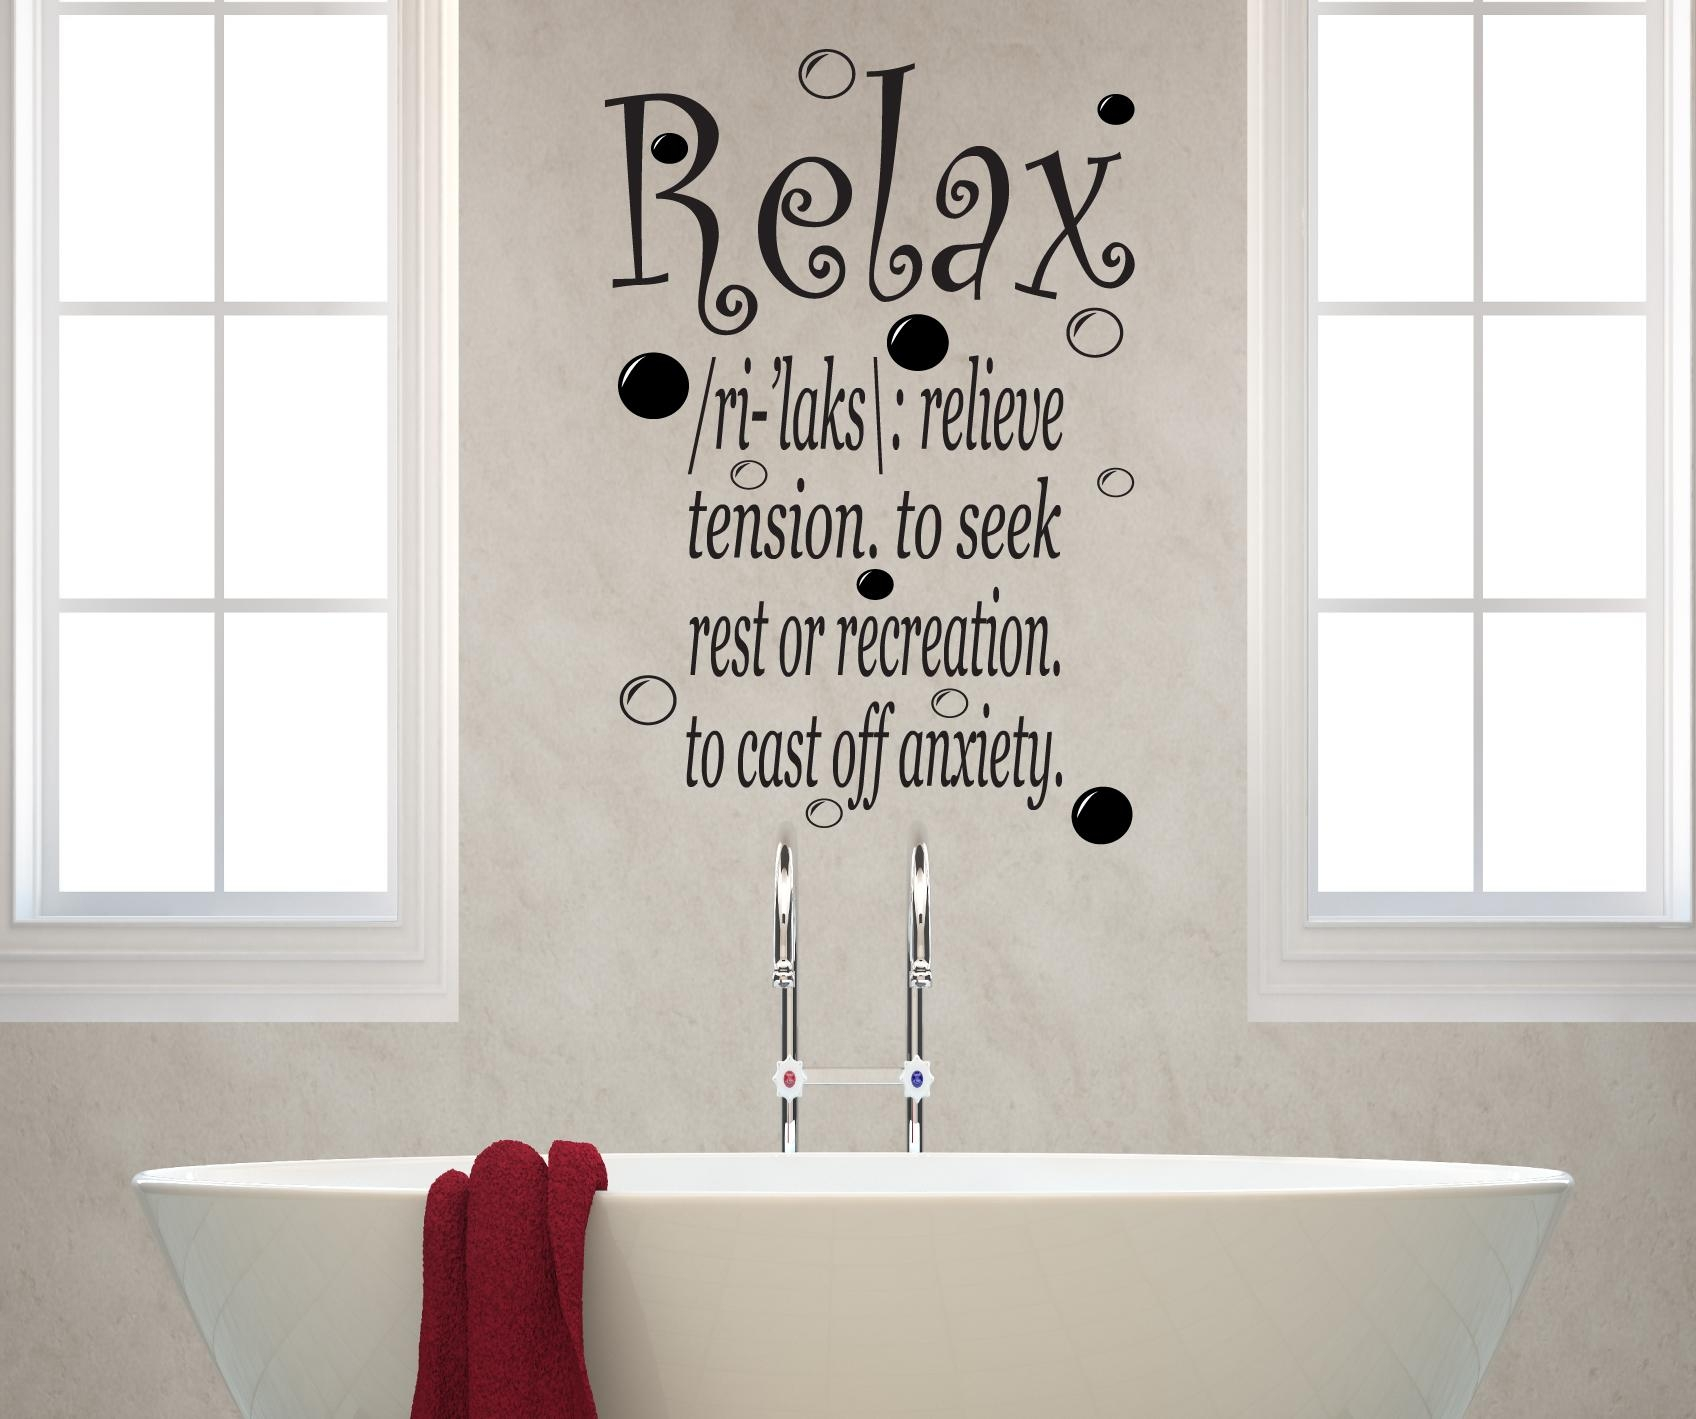 Wall Art For 2017 With Bathroom Patent Posters Group Of Decor Within Wall Art For The Bathroom (View 14 of 20)